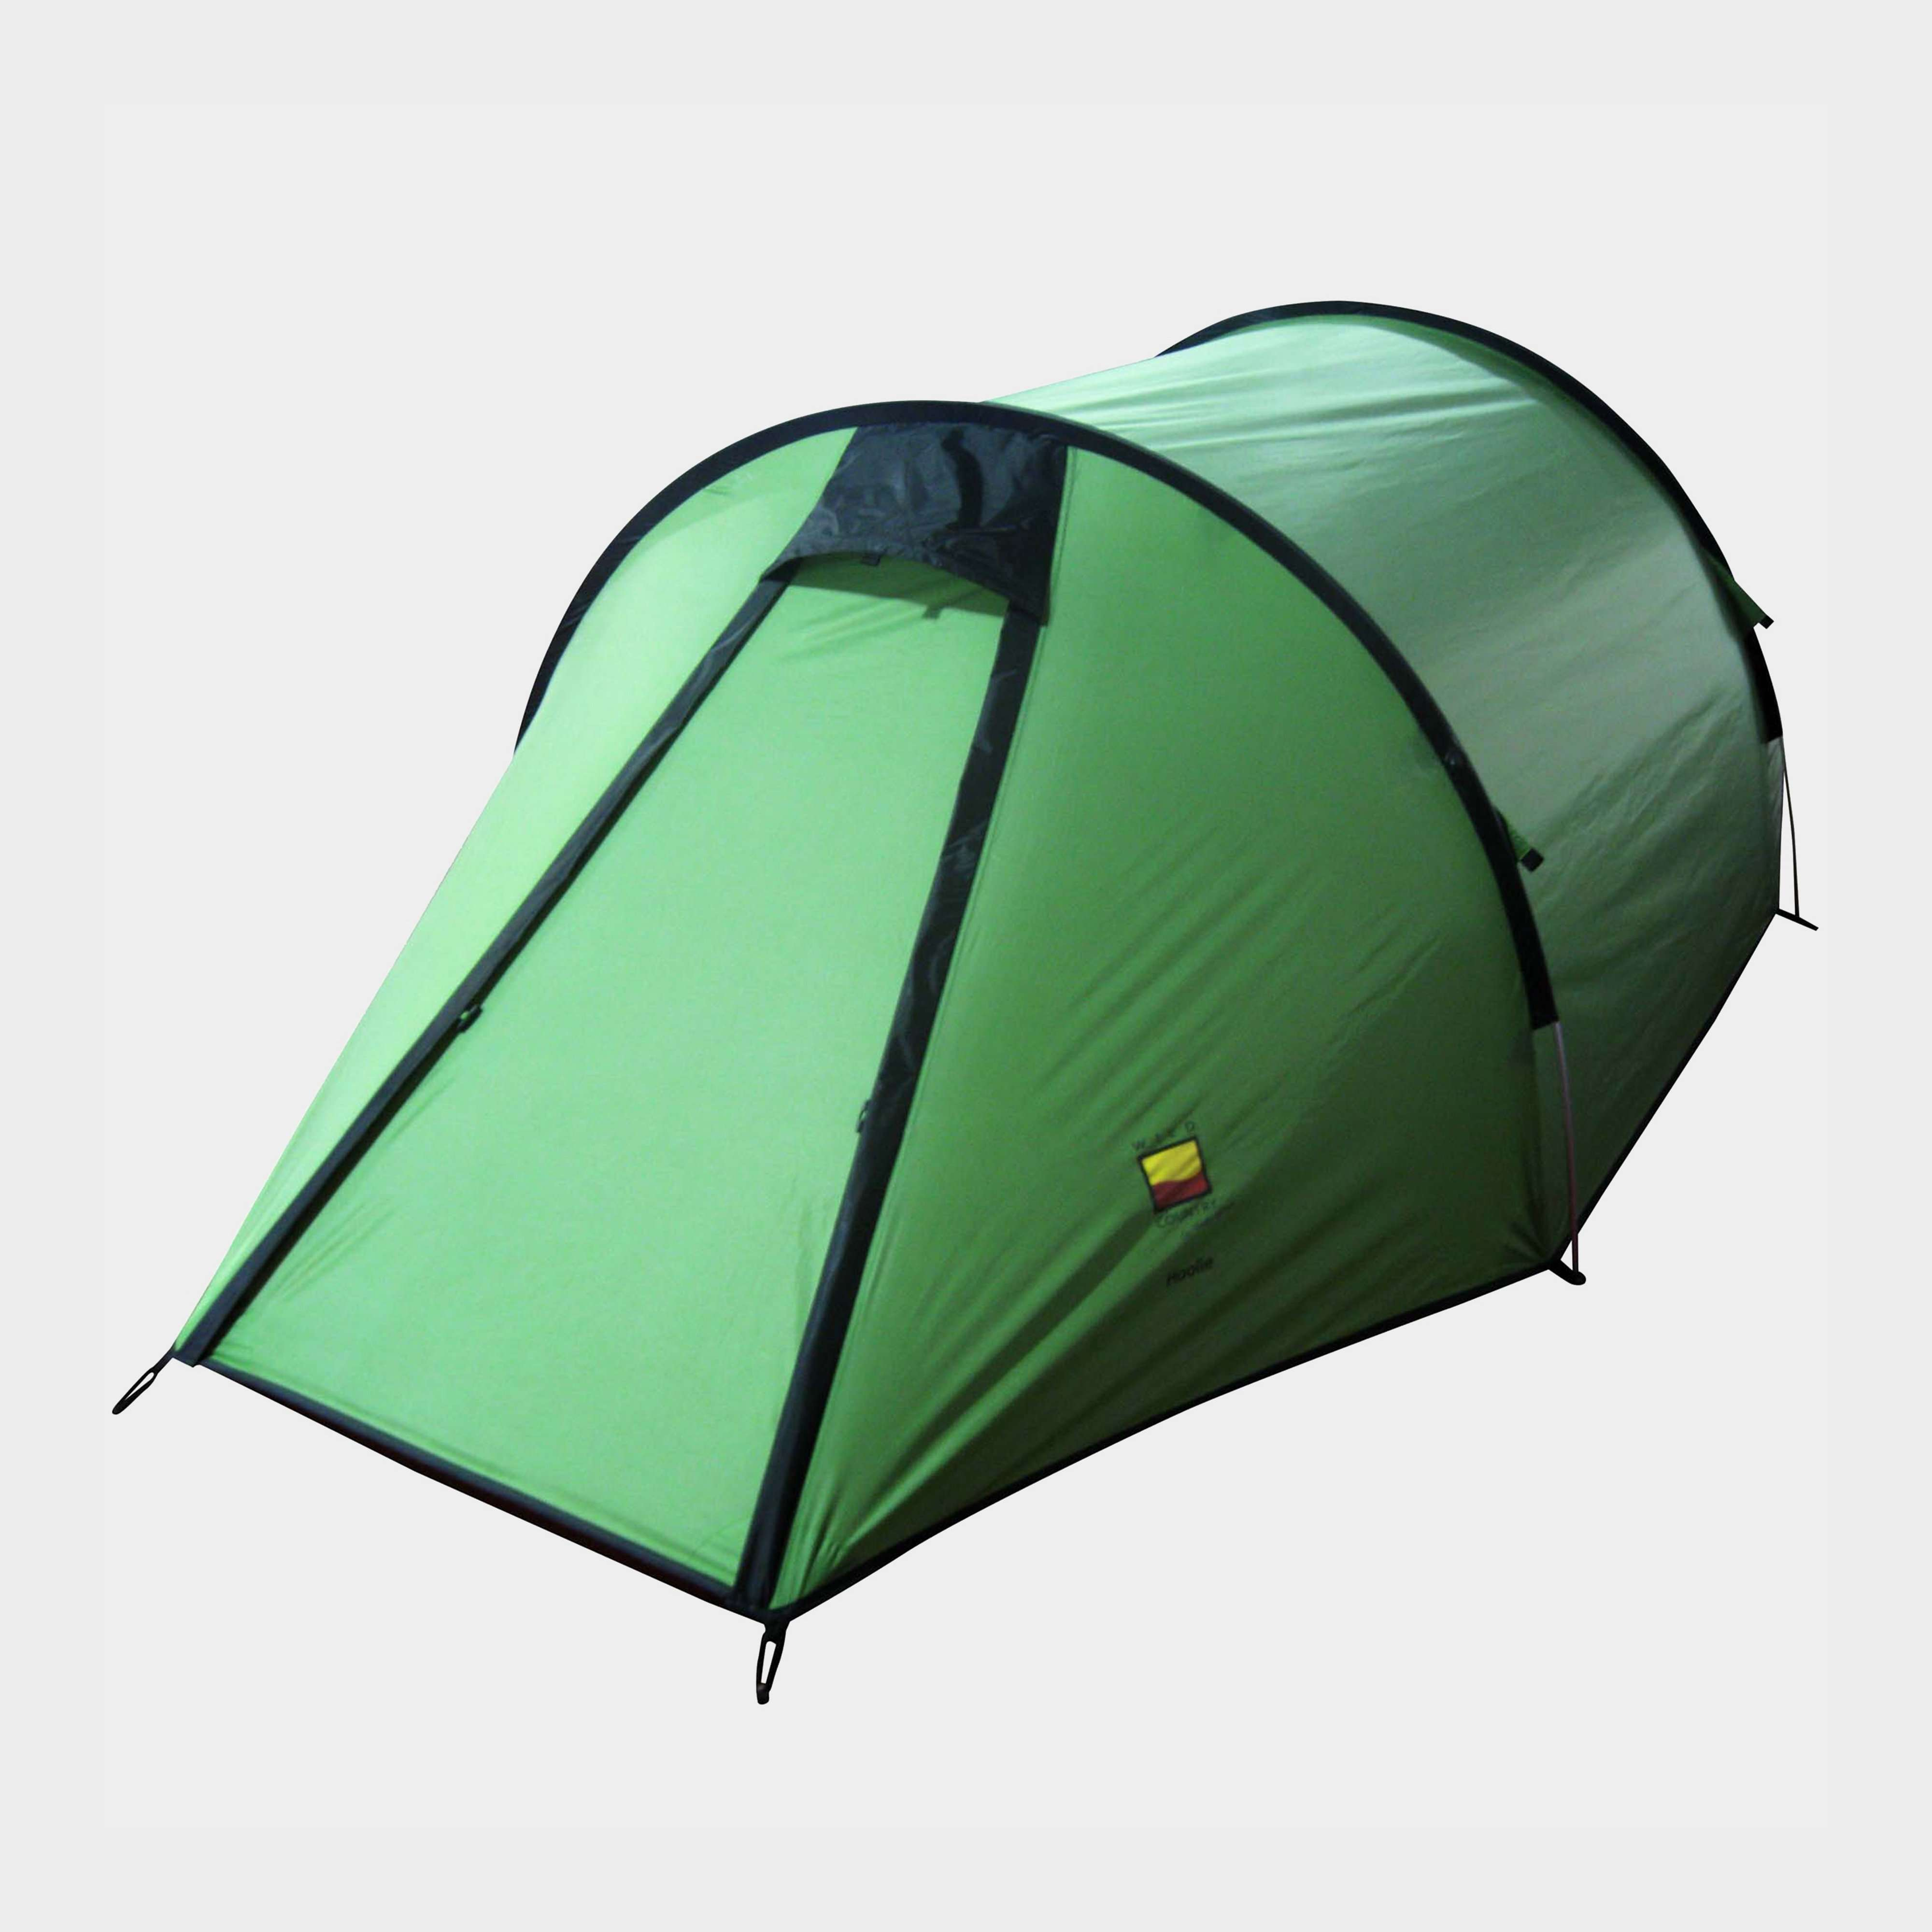 WILD COUNTRY Wild Country Hoolie 2 Tent